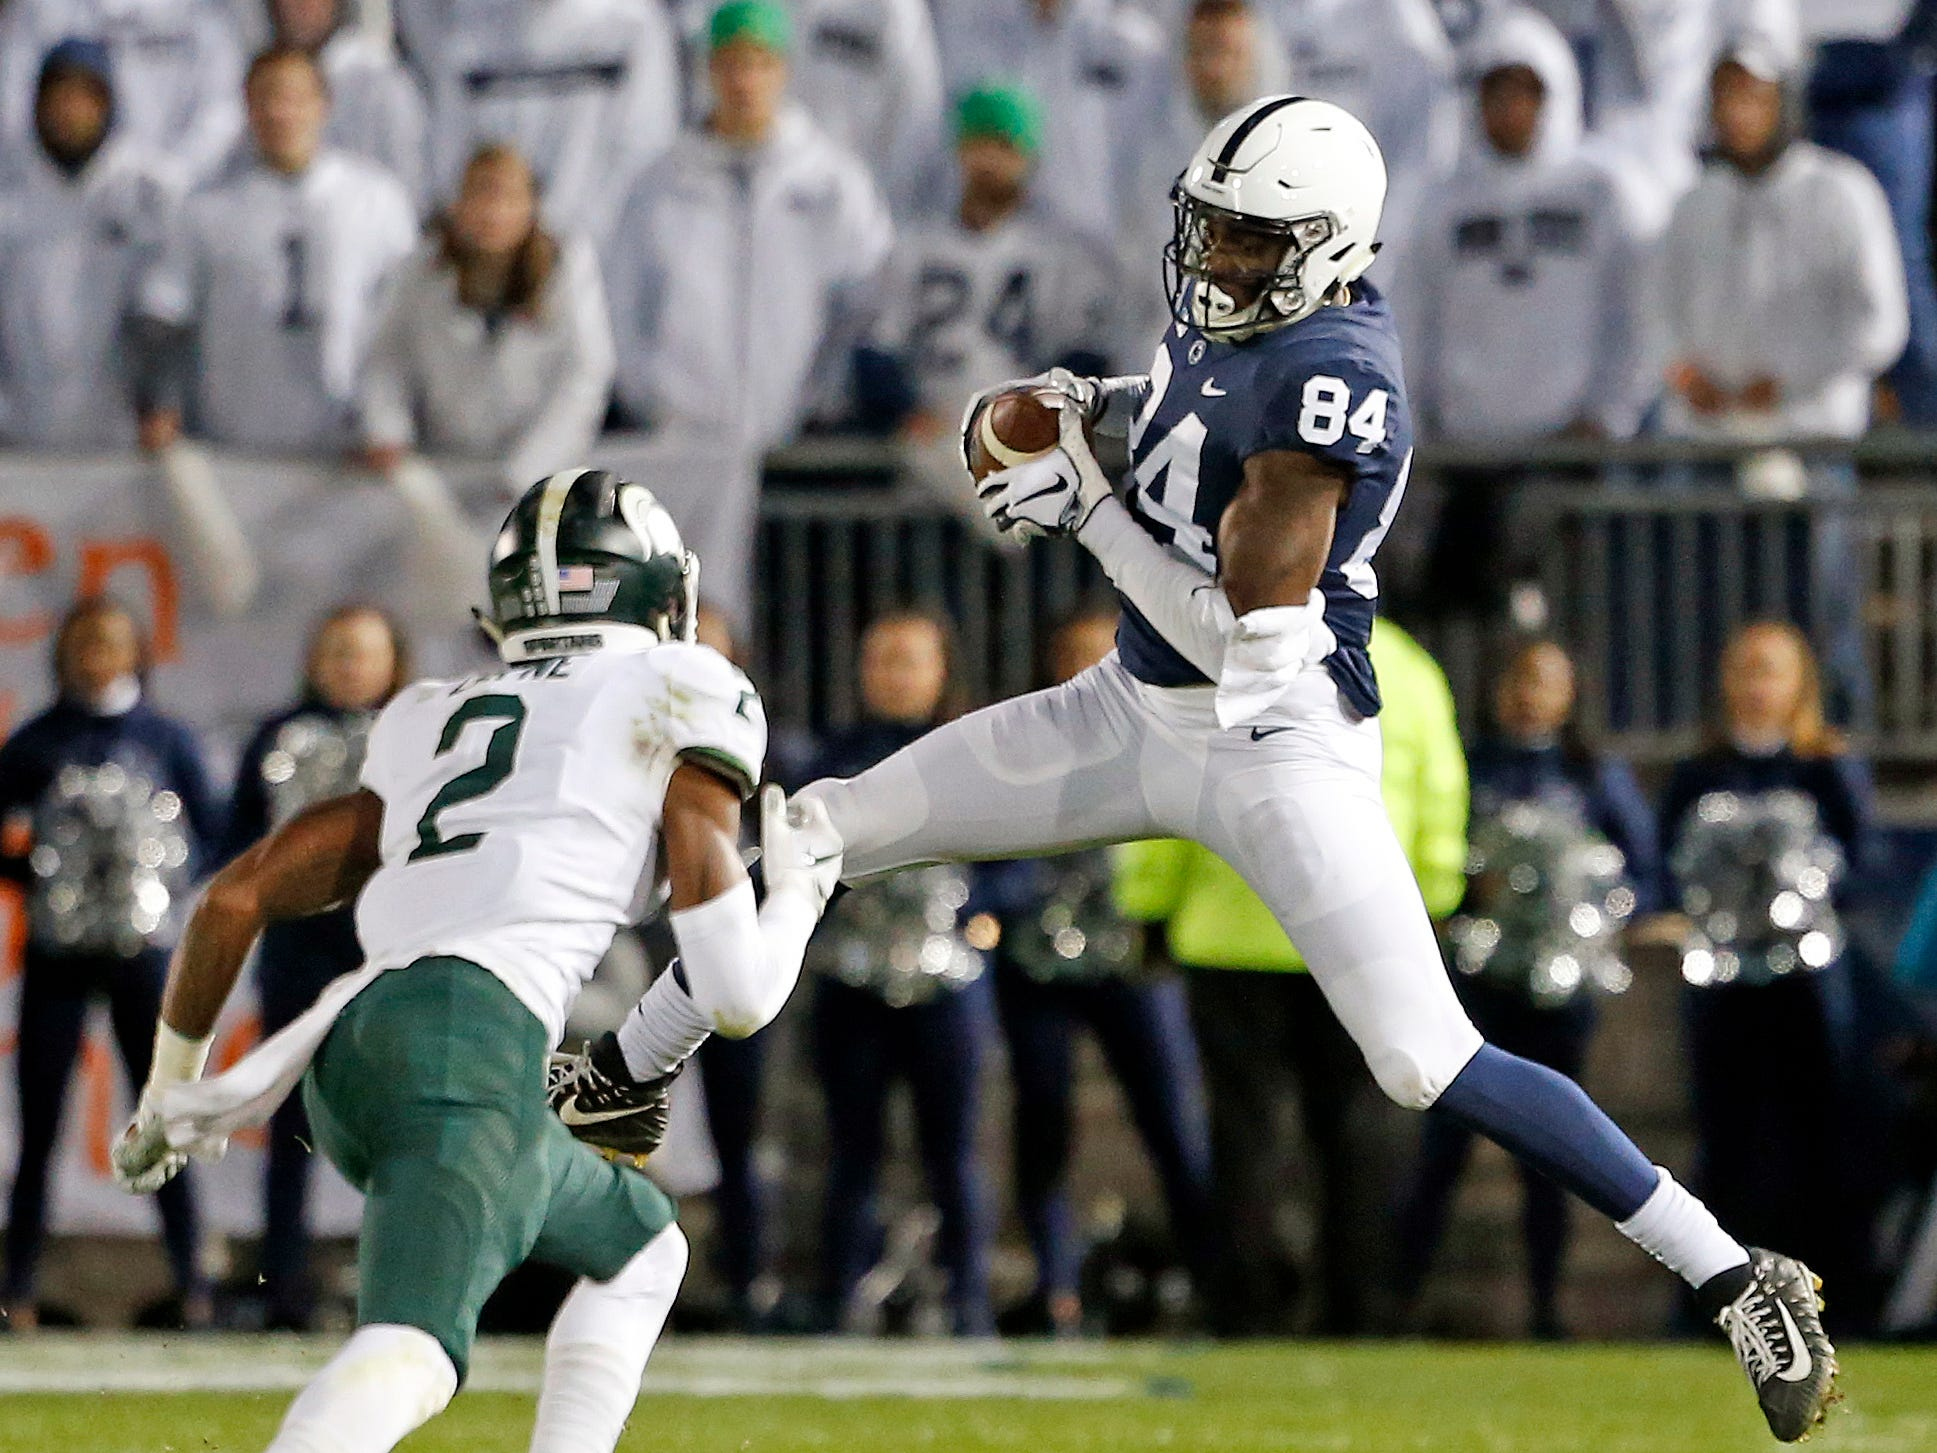 Penn State's Juwan Johnson (84) catches a pass in front of Michigan State's Justin Layne (2) during the second half of an NCAA college football game in State College, Pa., Saturday, Oct. 13, 2018. (AP Photo/Chris Knight)